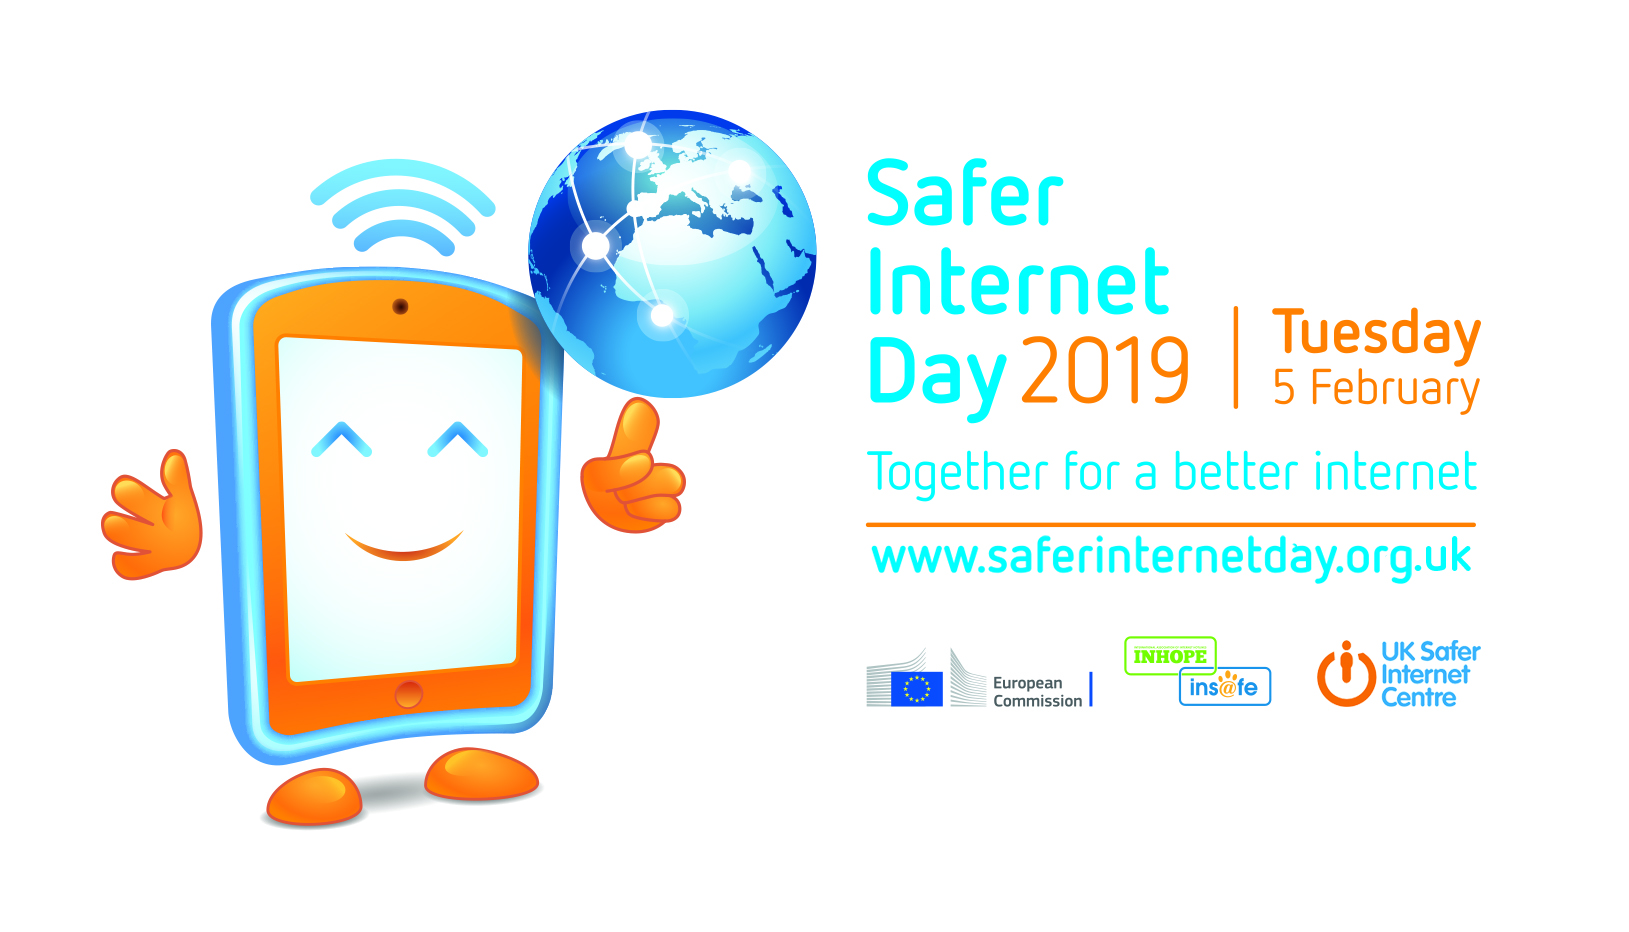 Together for a better internet – Safer Internet Day 2019